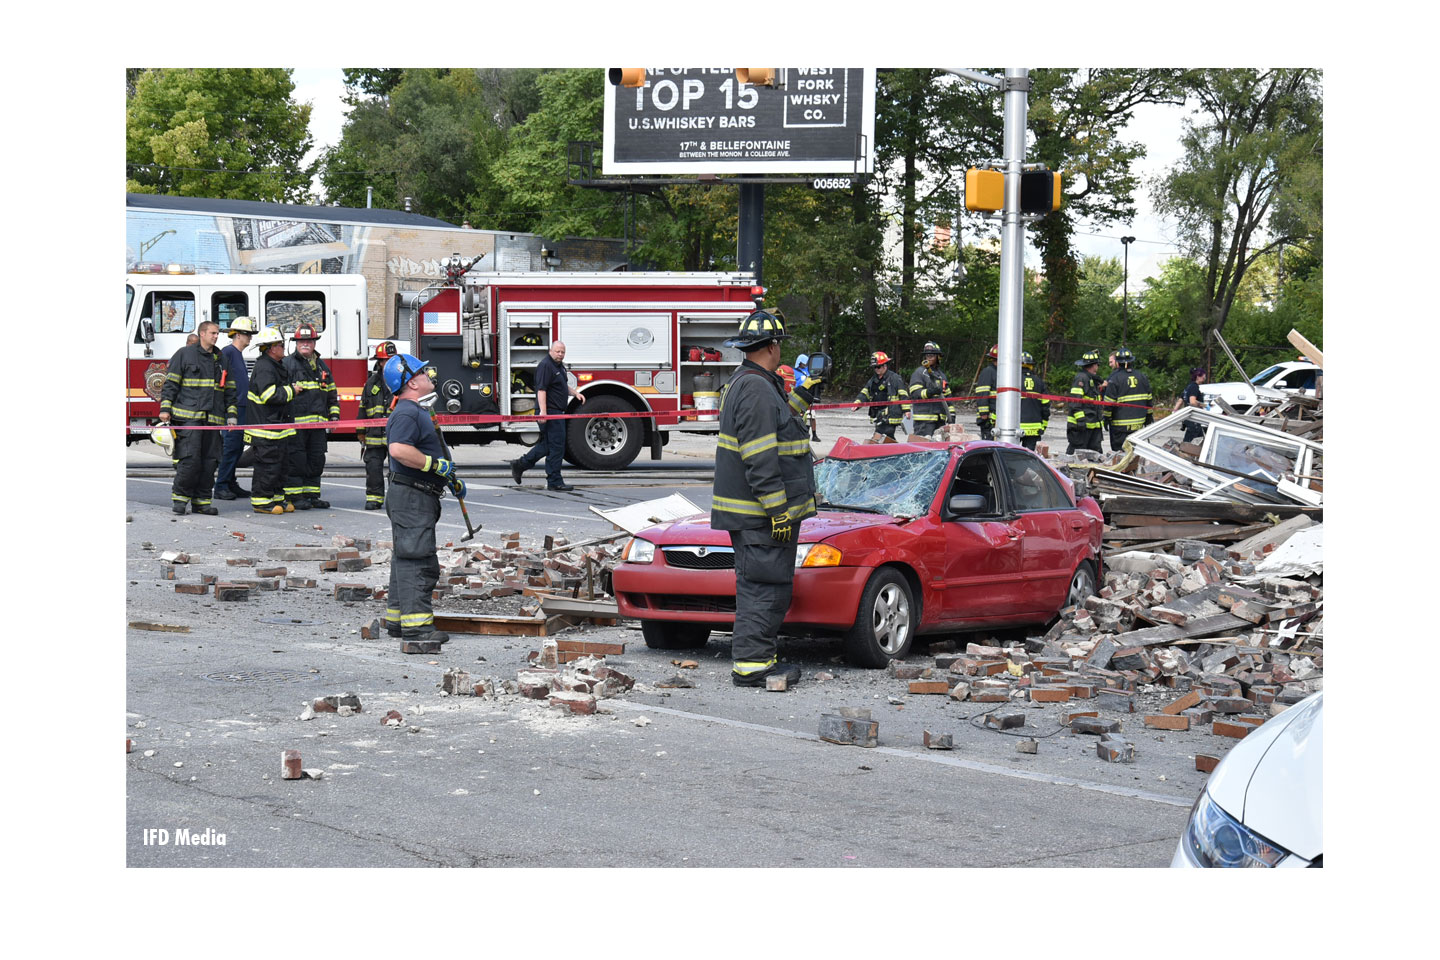 Indy firefighters at the scene of the collapse and collision.